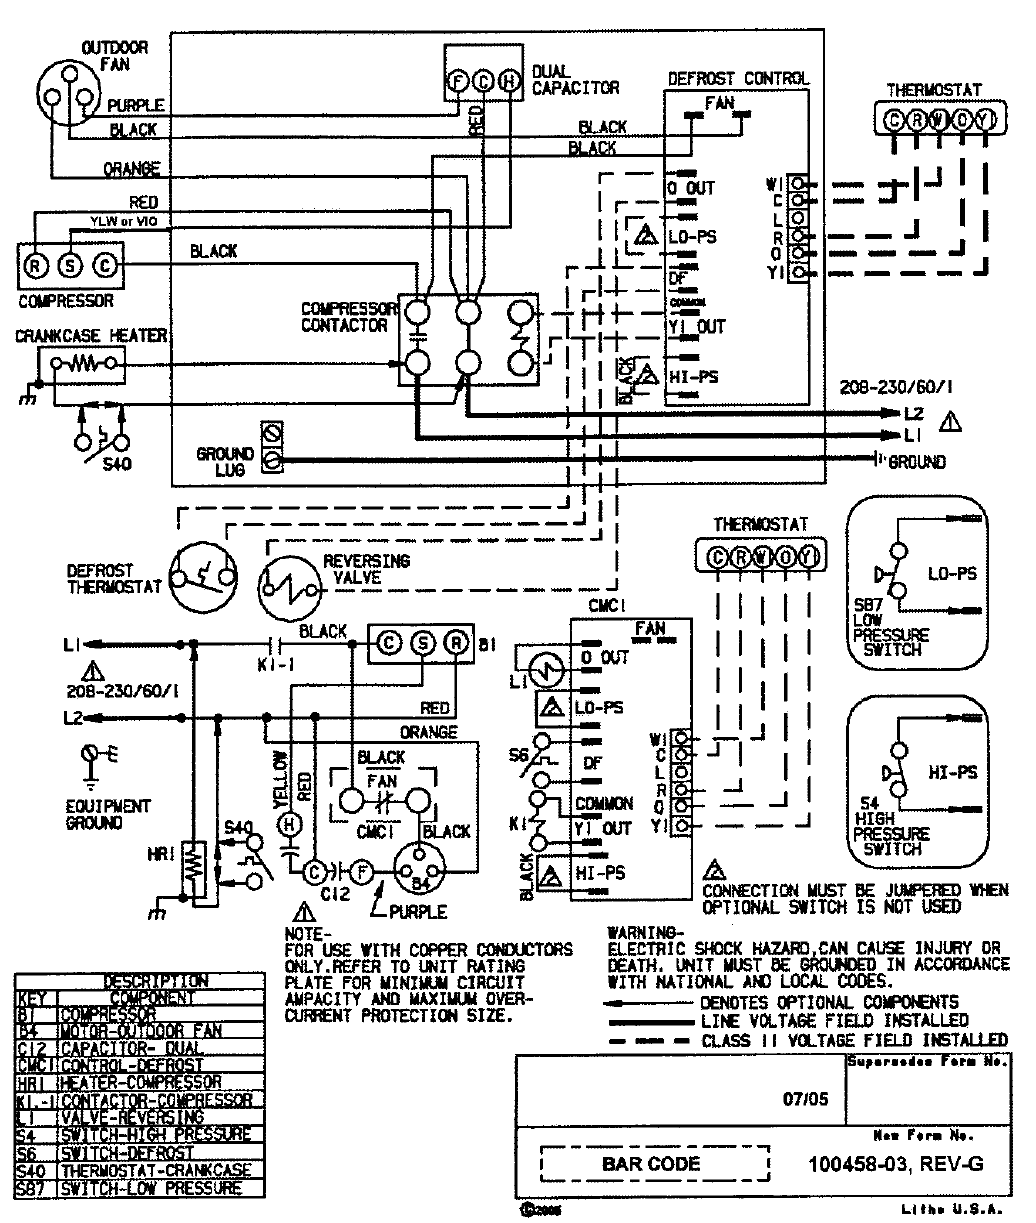 66a1938d e87a 8684 cde2 d0cfcc8a31fc bg9 page 9 of ducane (hvac) heat pump 2hp13 user guide manualsonline com ducane heat pump wiring diagram at crackthecode.co